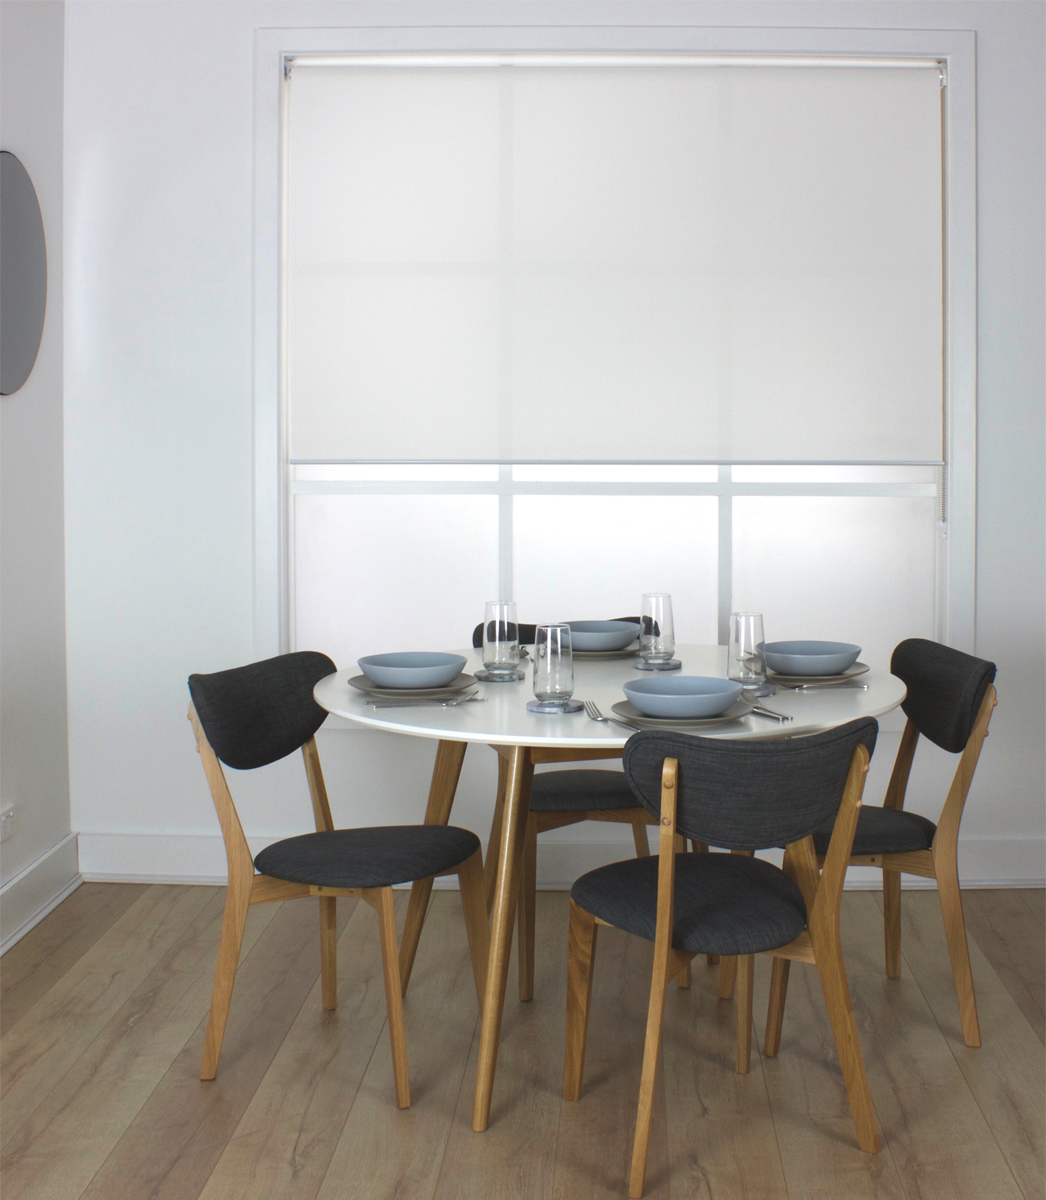 Sunveil White Light Filtering Roller Blind Smart Home